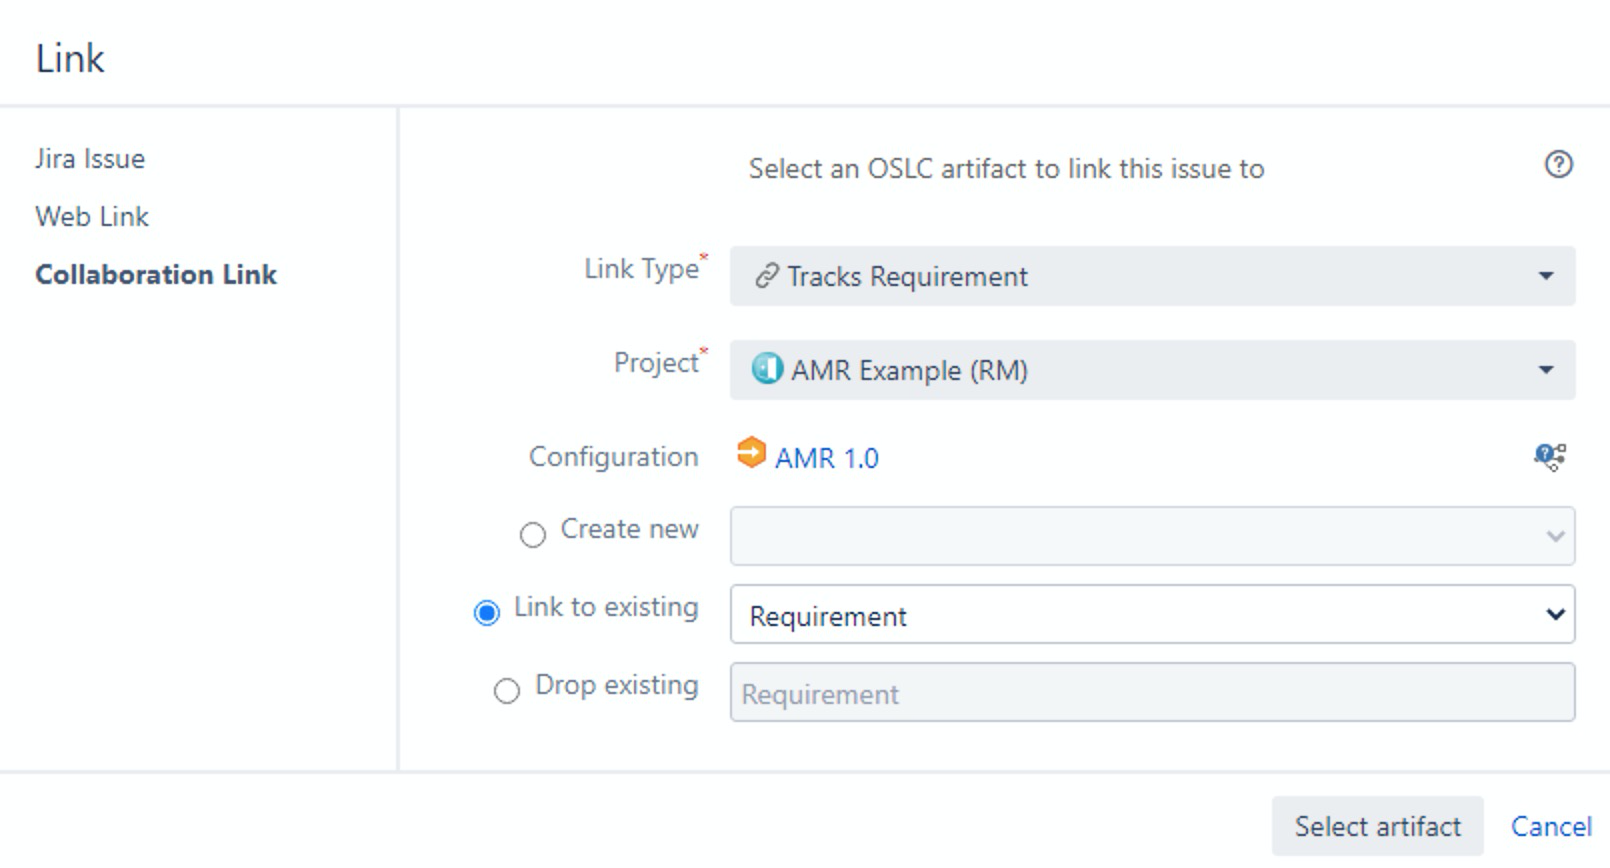 What Configuration is Used for My New Link_OSLC Connect for Jira 2.6.0_SodiusWillert